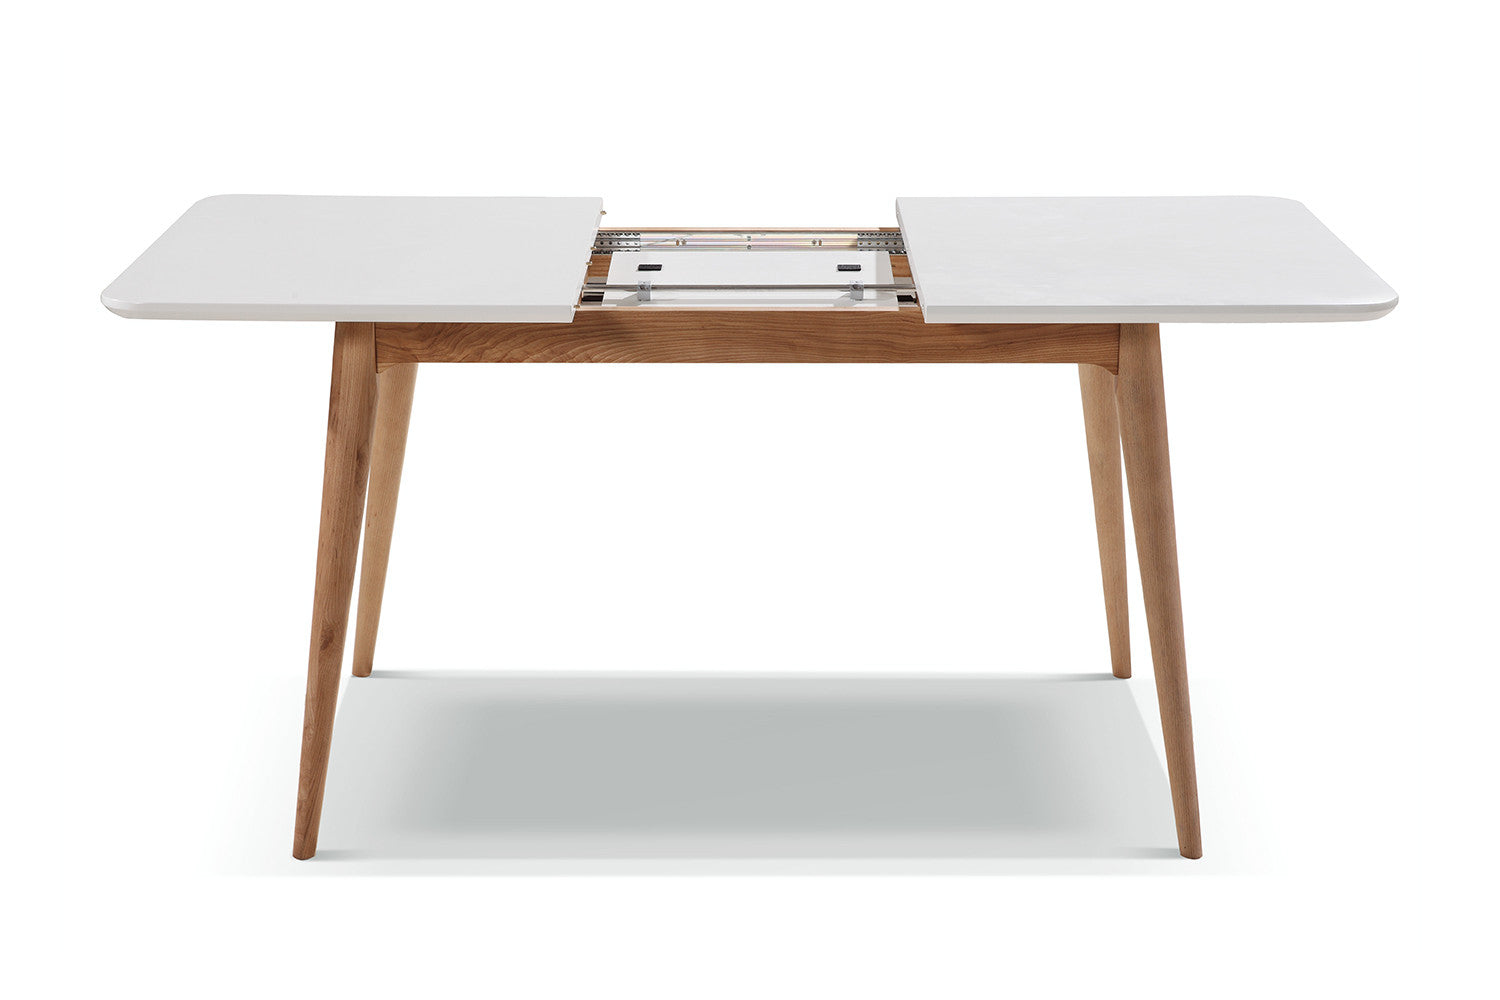 Table de cuisine extensible vintage breggia dewarens for Table salle a manger yvrai